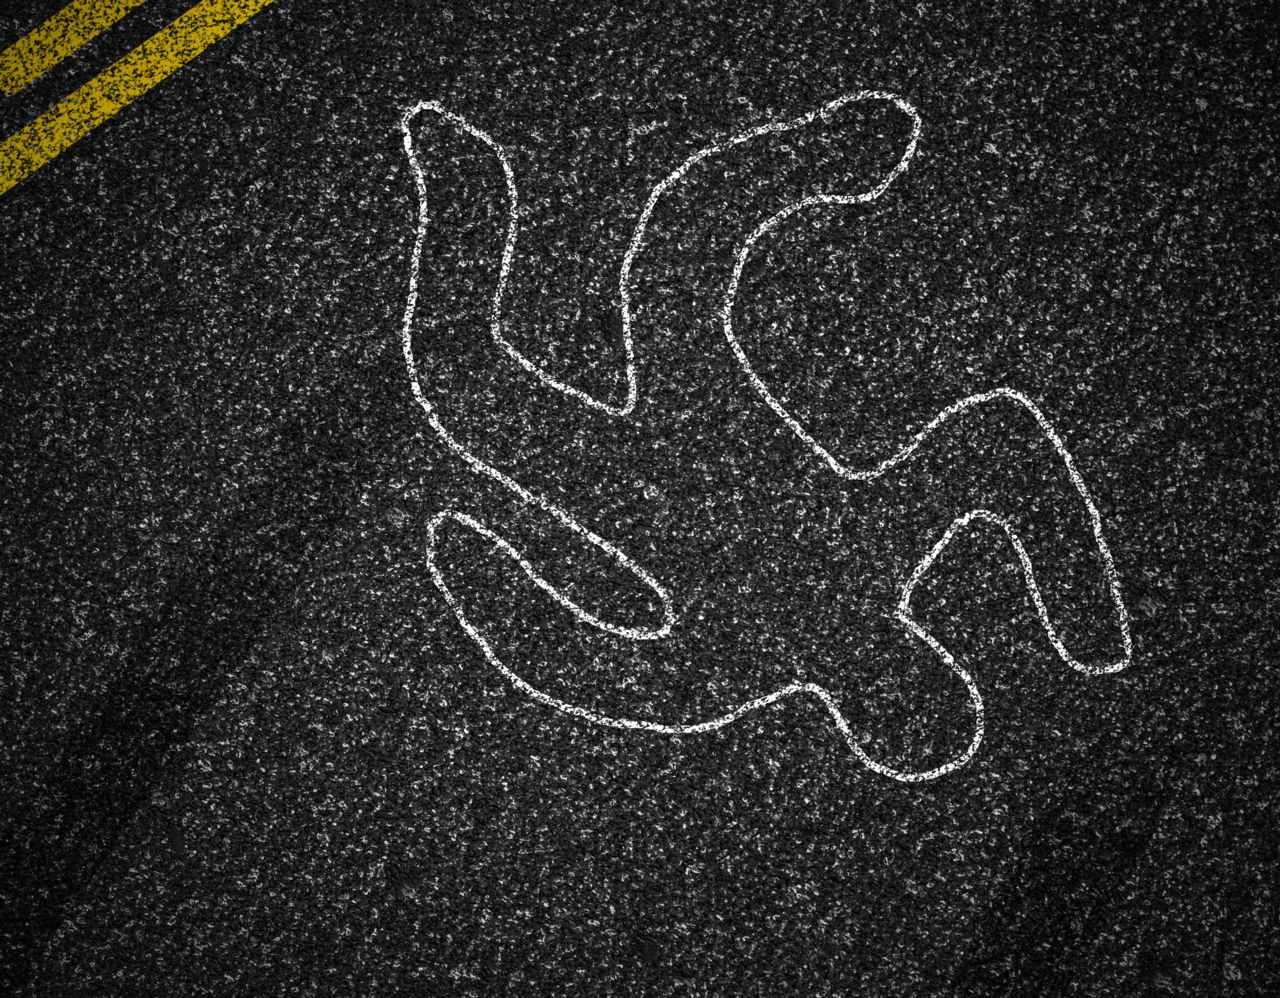 Image of Pedestrian Drawn on the Road with Chalk